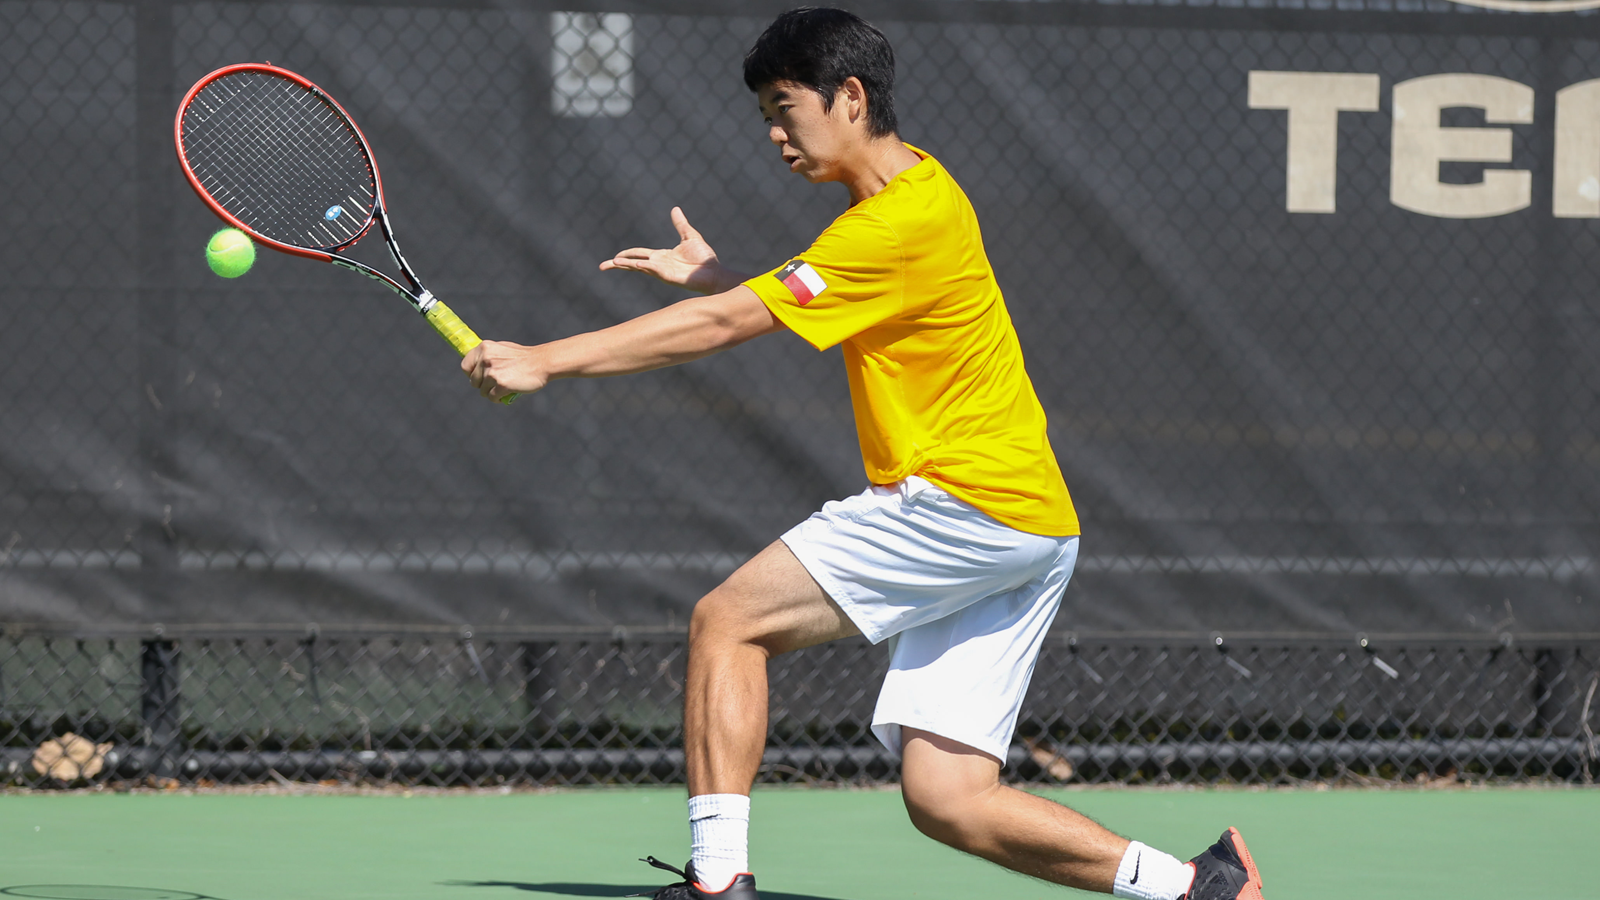 Pirates push past Blugolds on Tuesday, 8-1